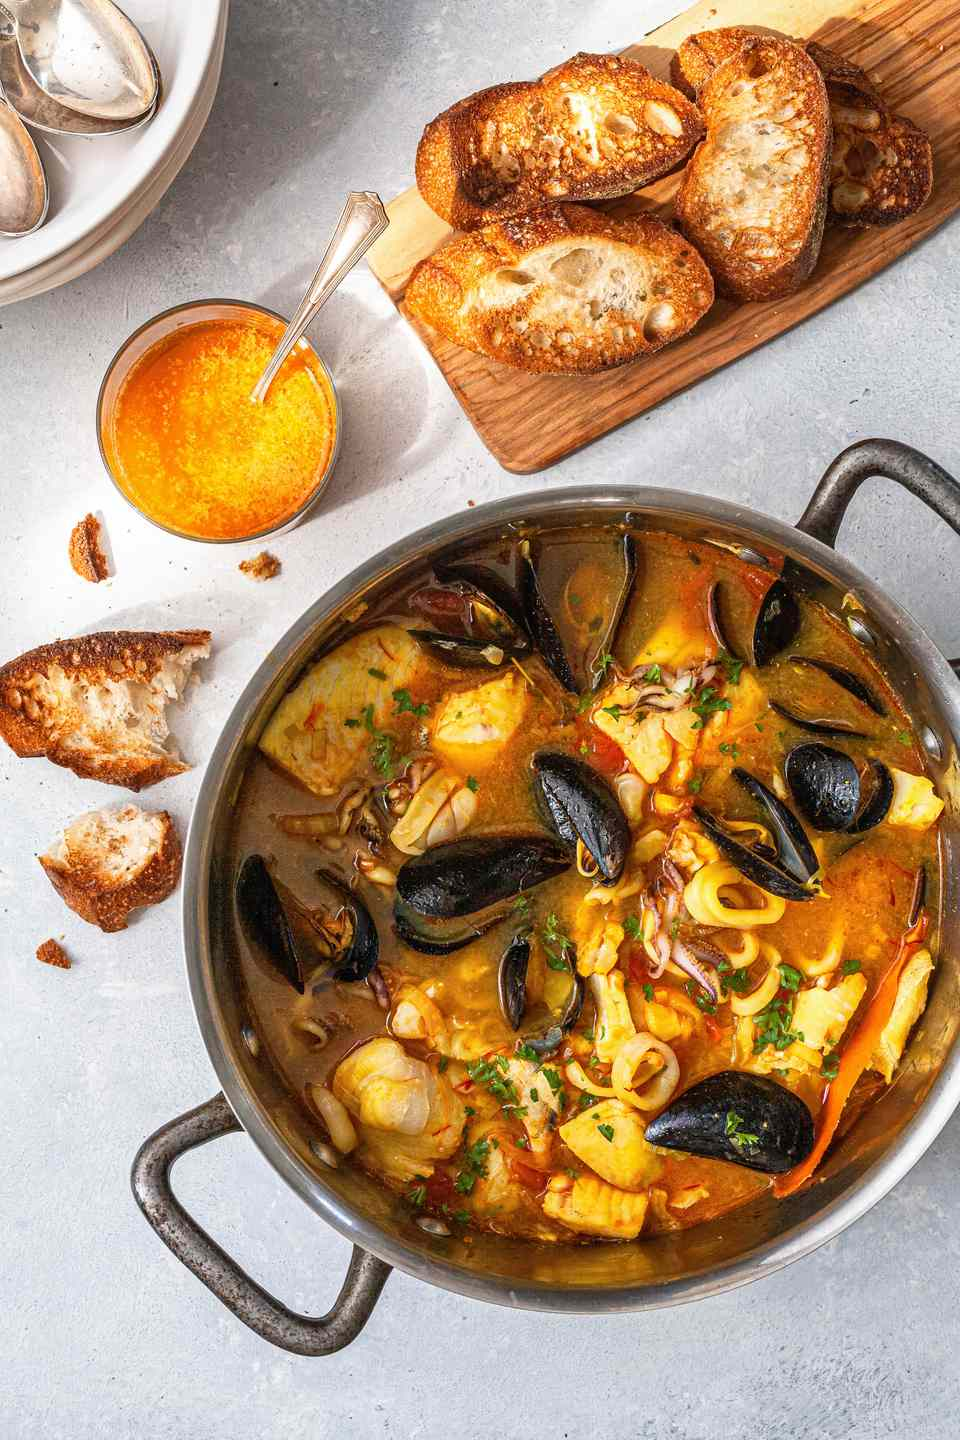 Overhead view of a pot of bouillabaisse and bread.